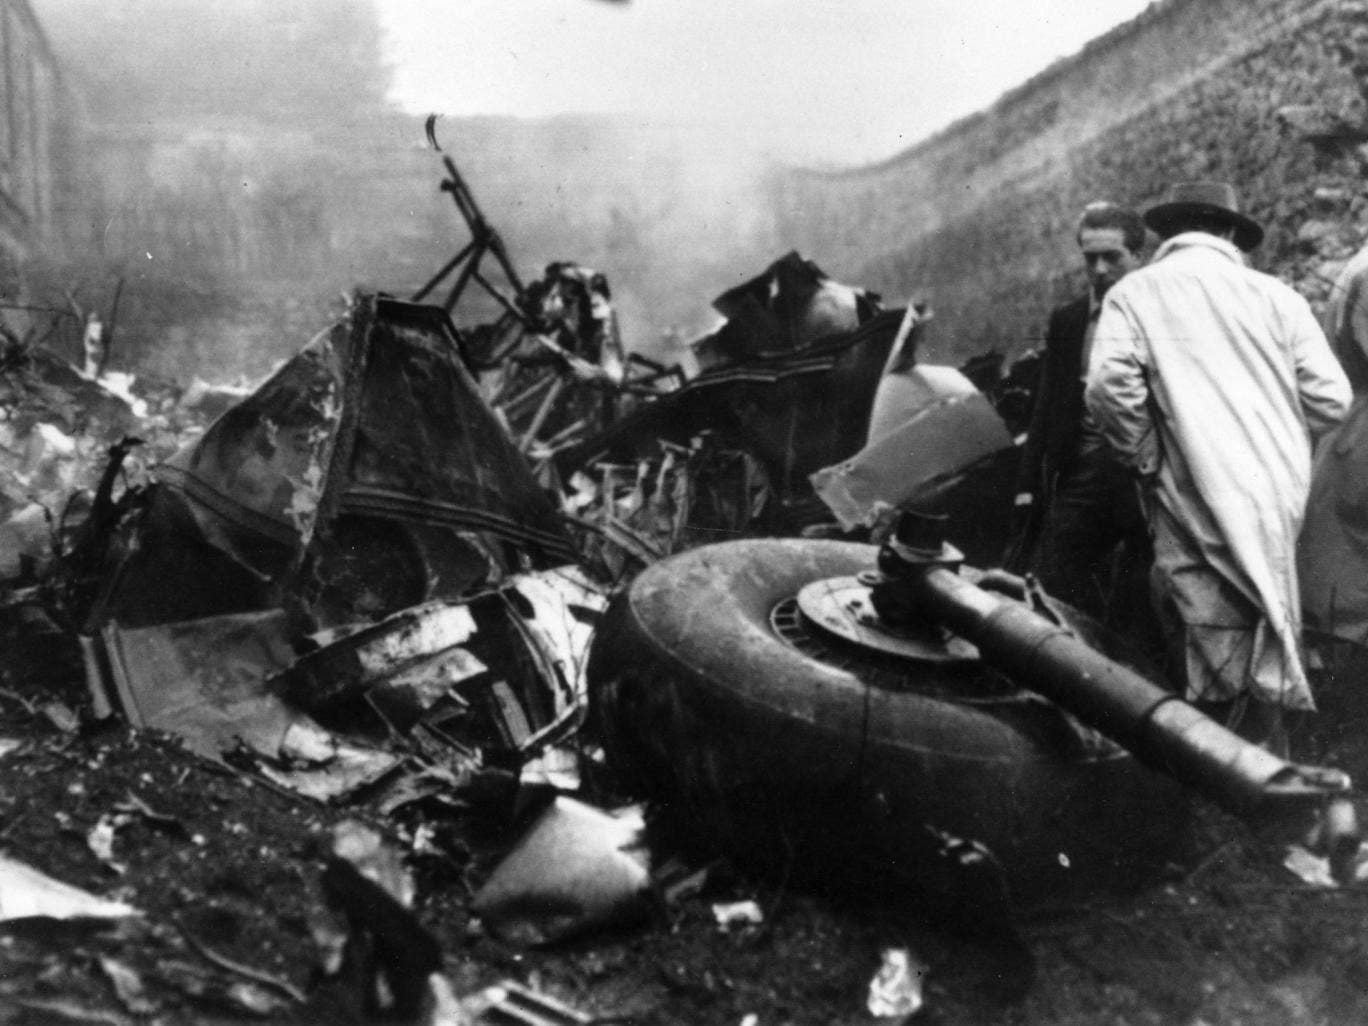 5th May 1949: The scene after the aircrash on the mountain of Superga, near the outskirts of Turin, which killed several members of Torino football club